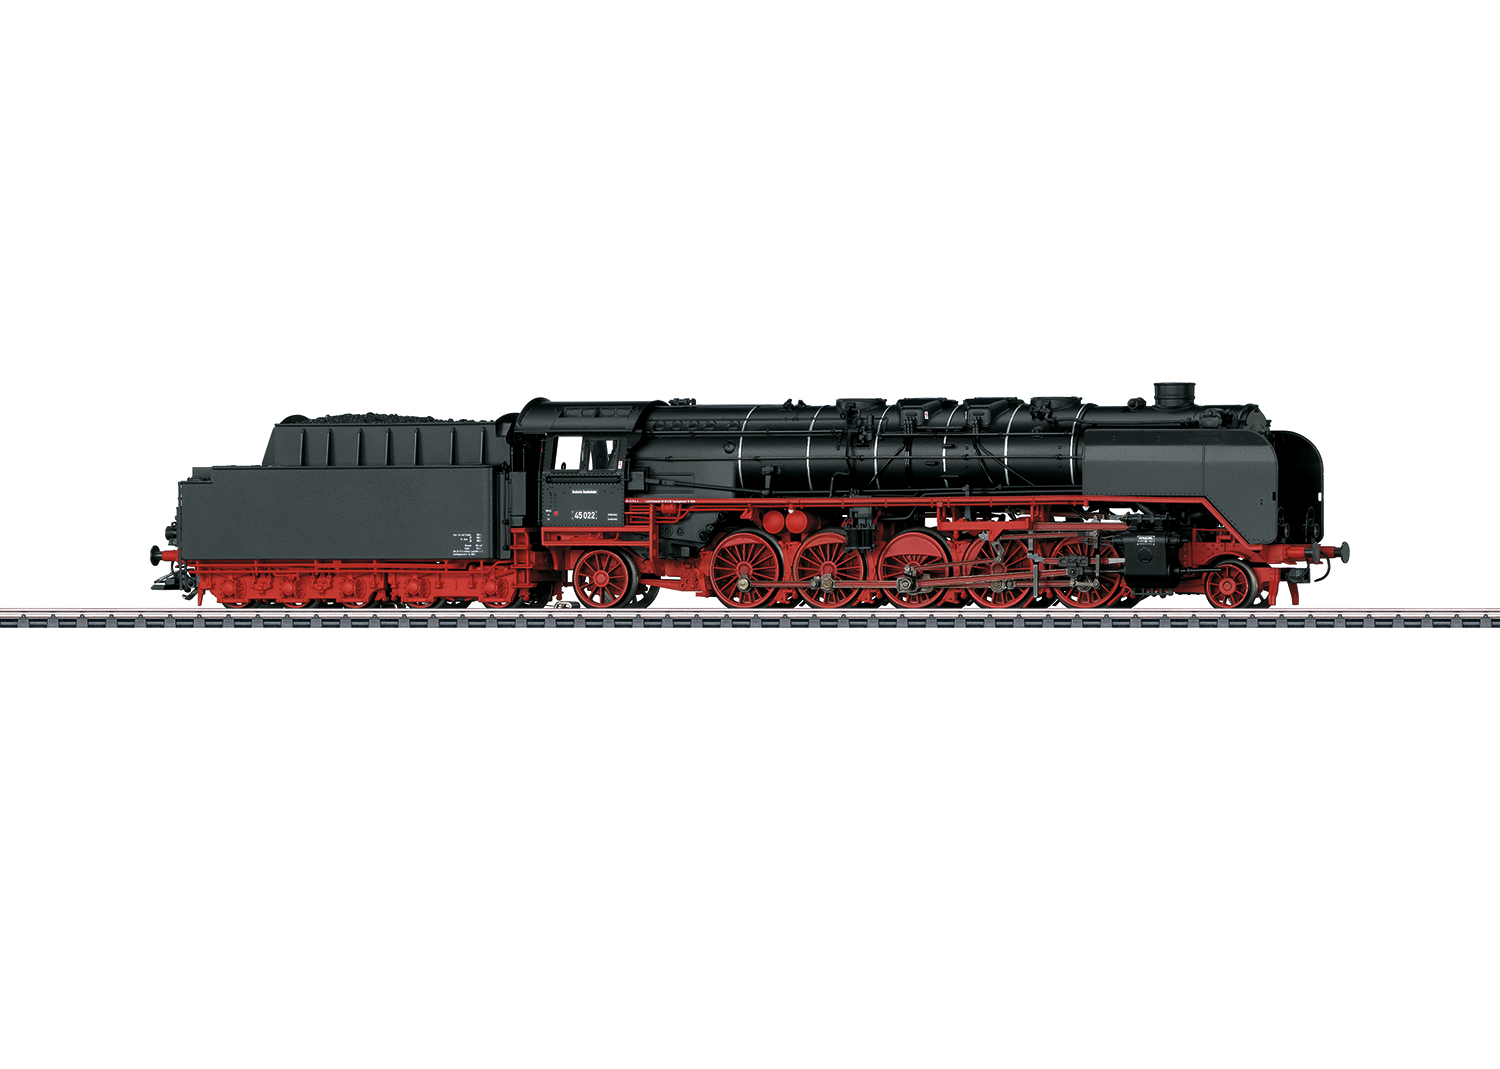 Class 45 Heavy Freight Steam Locomotive with a Tender